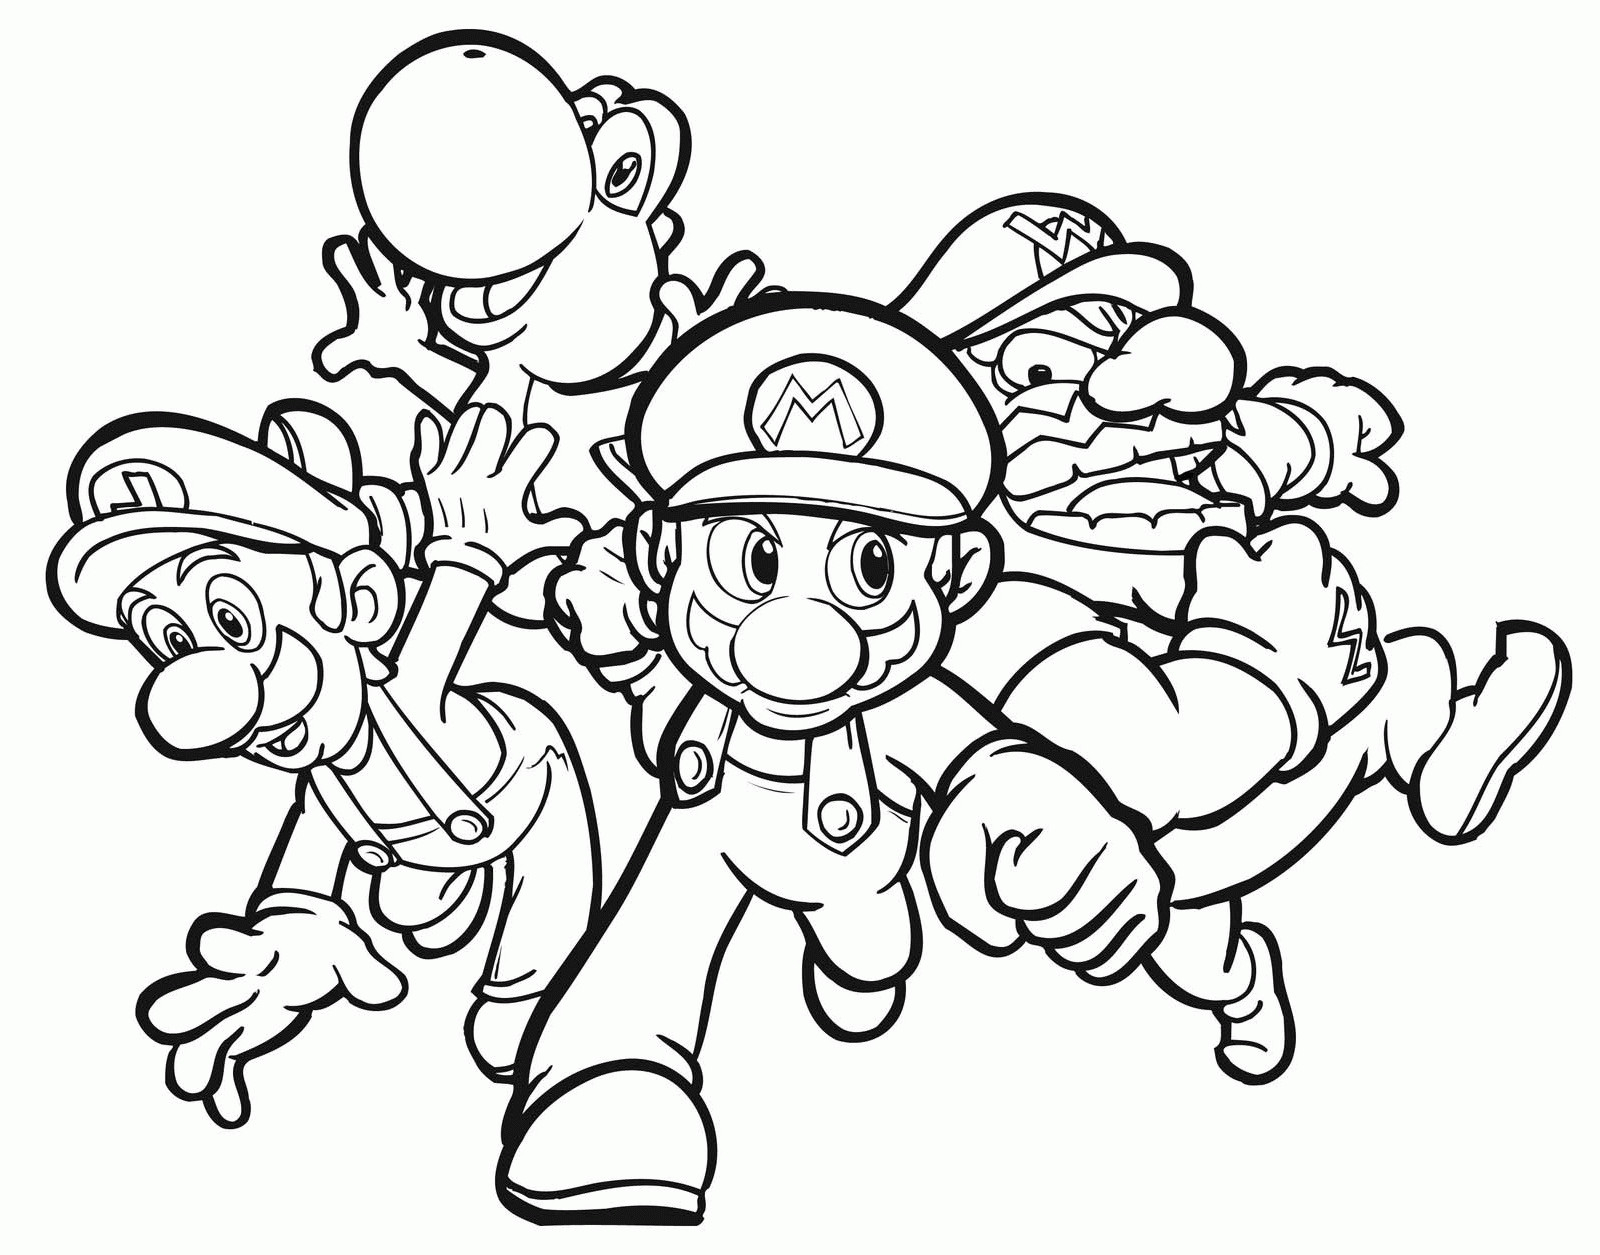 Coloring Pages Mario  Download 18d - Free For Children